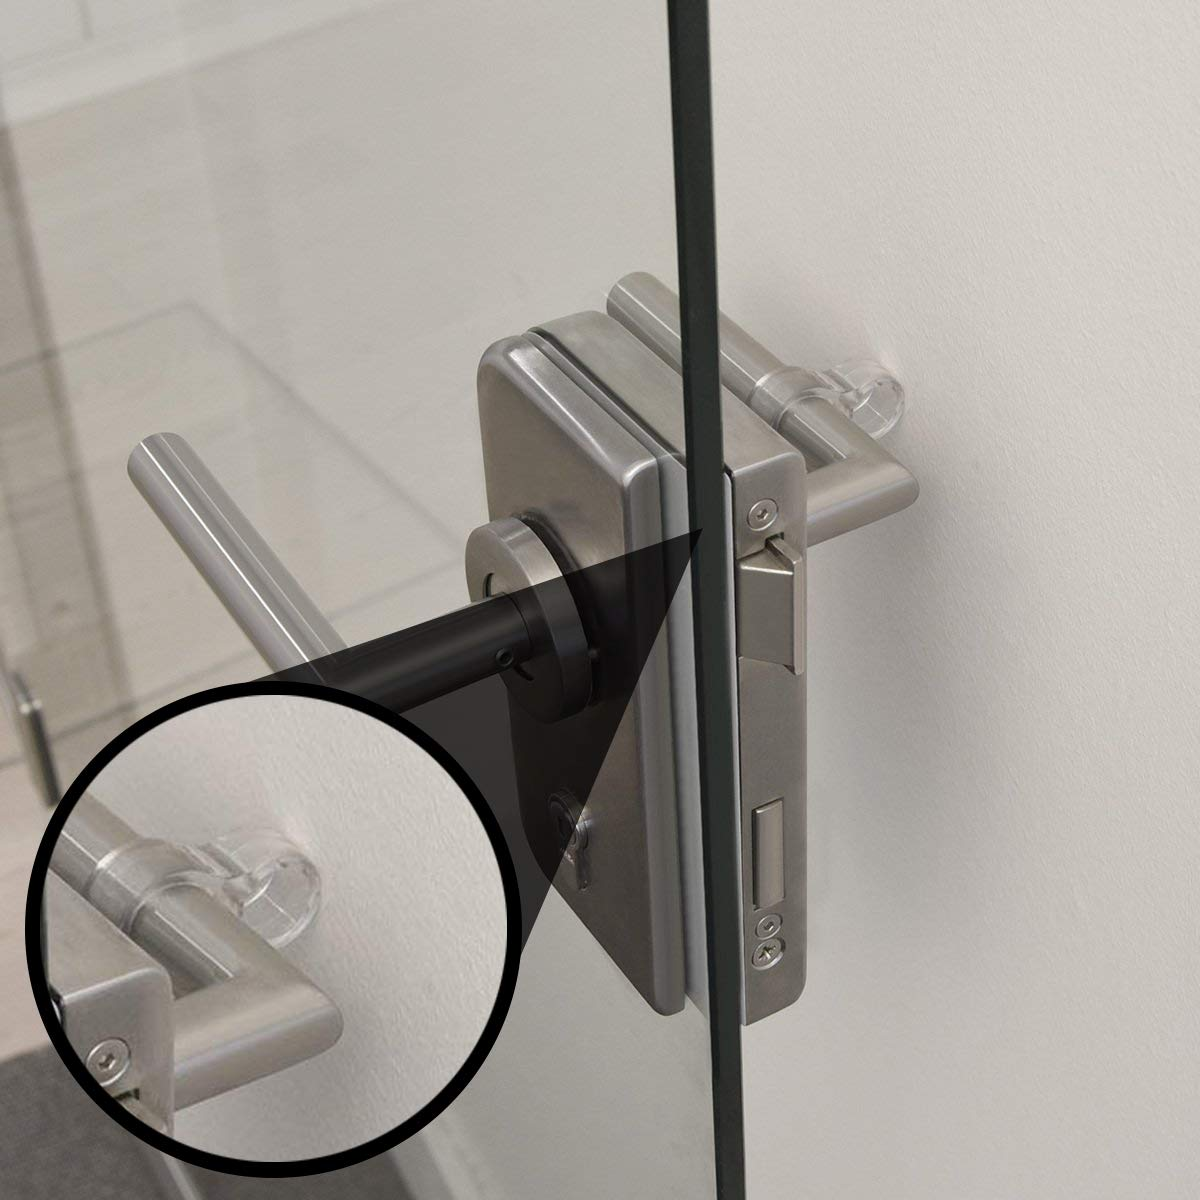 High quality PVC door handle protection with BSCI ISO certification